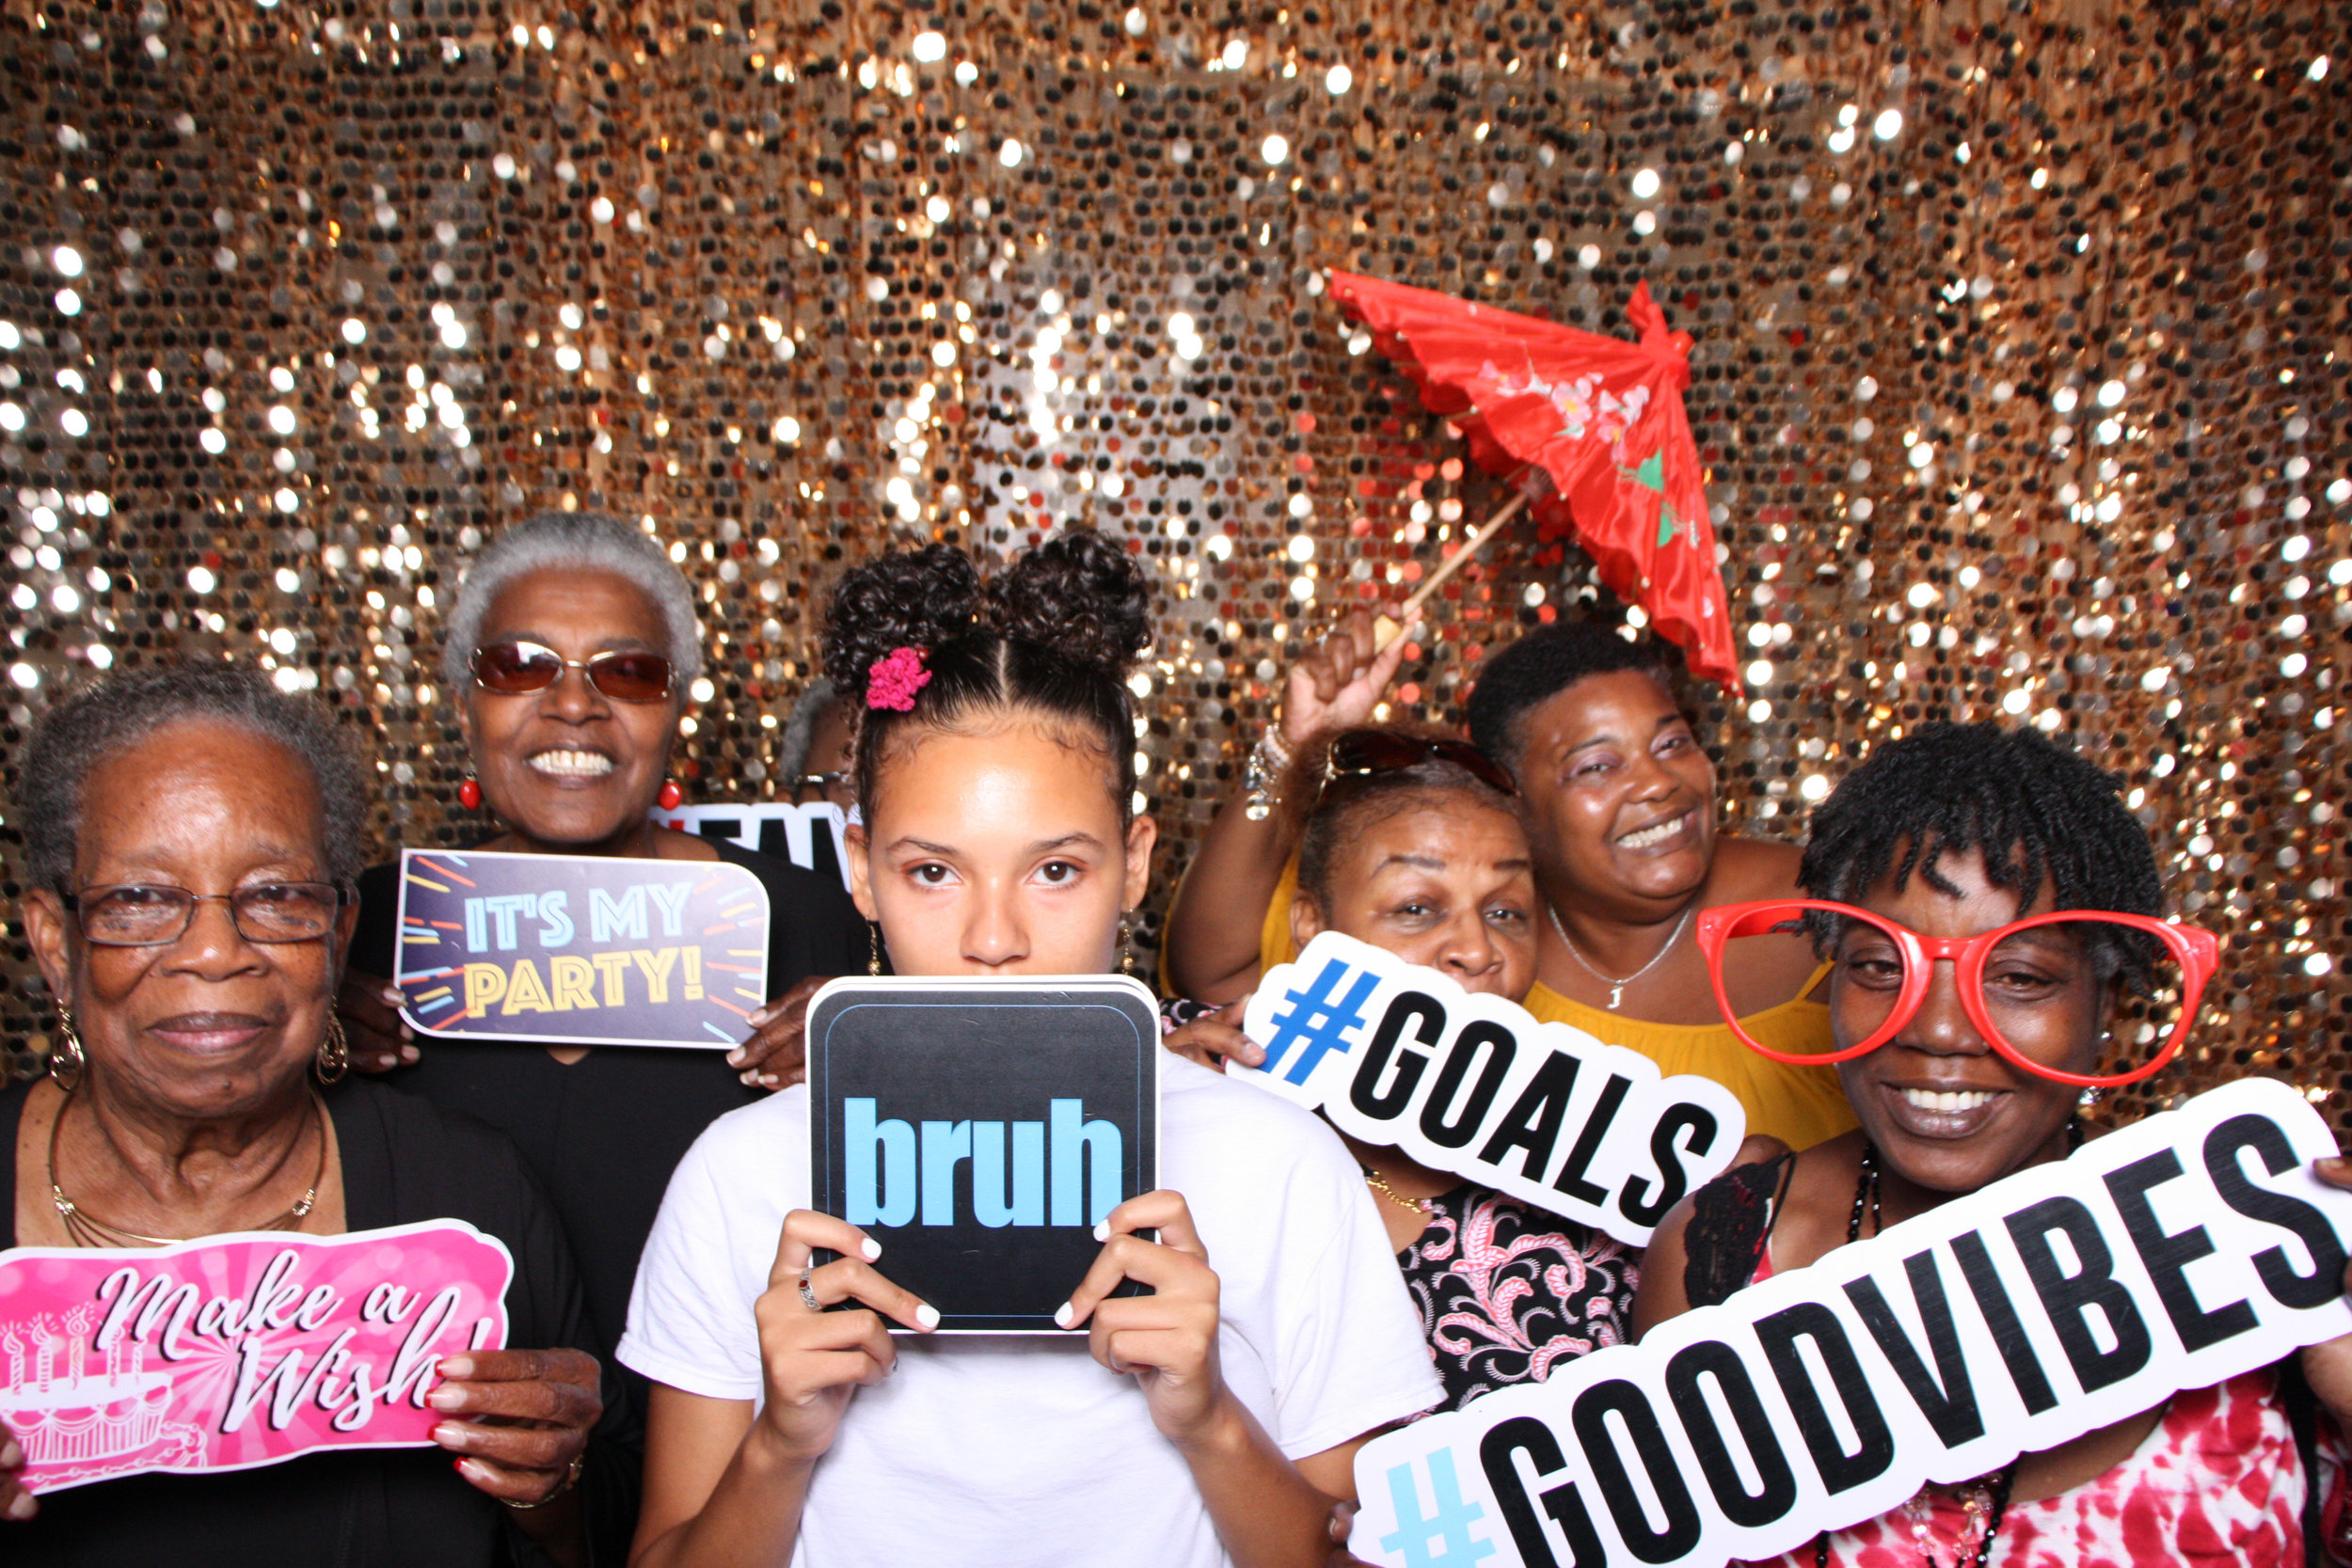 2-HR PHOTO BOOTH SERVICE   Open Air Photo booth    Contact us for pricing & availability